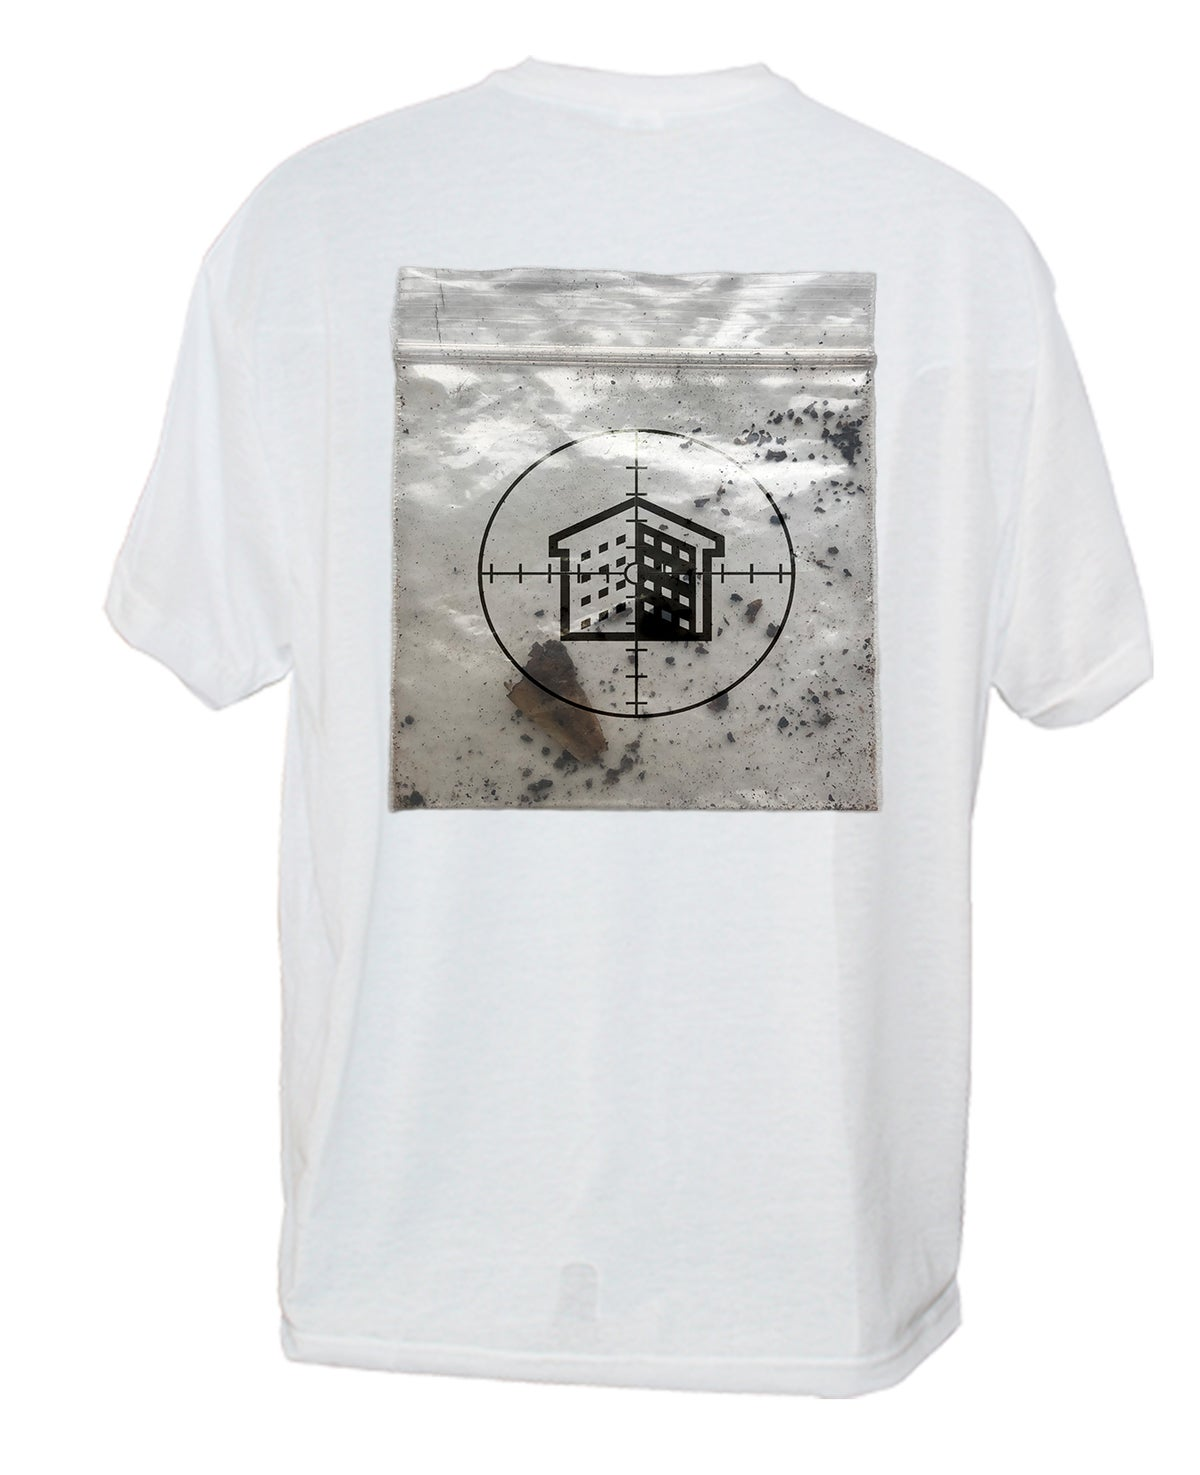 Image of PHST 4/20 T-SHIRT